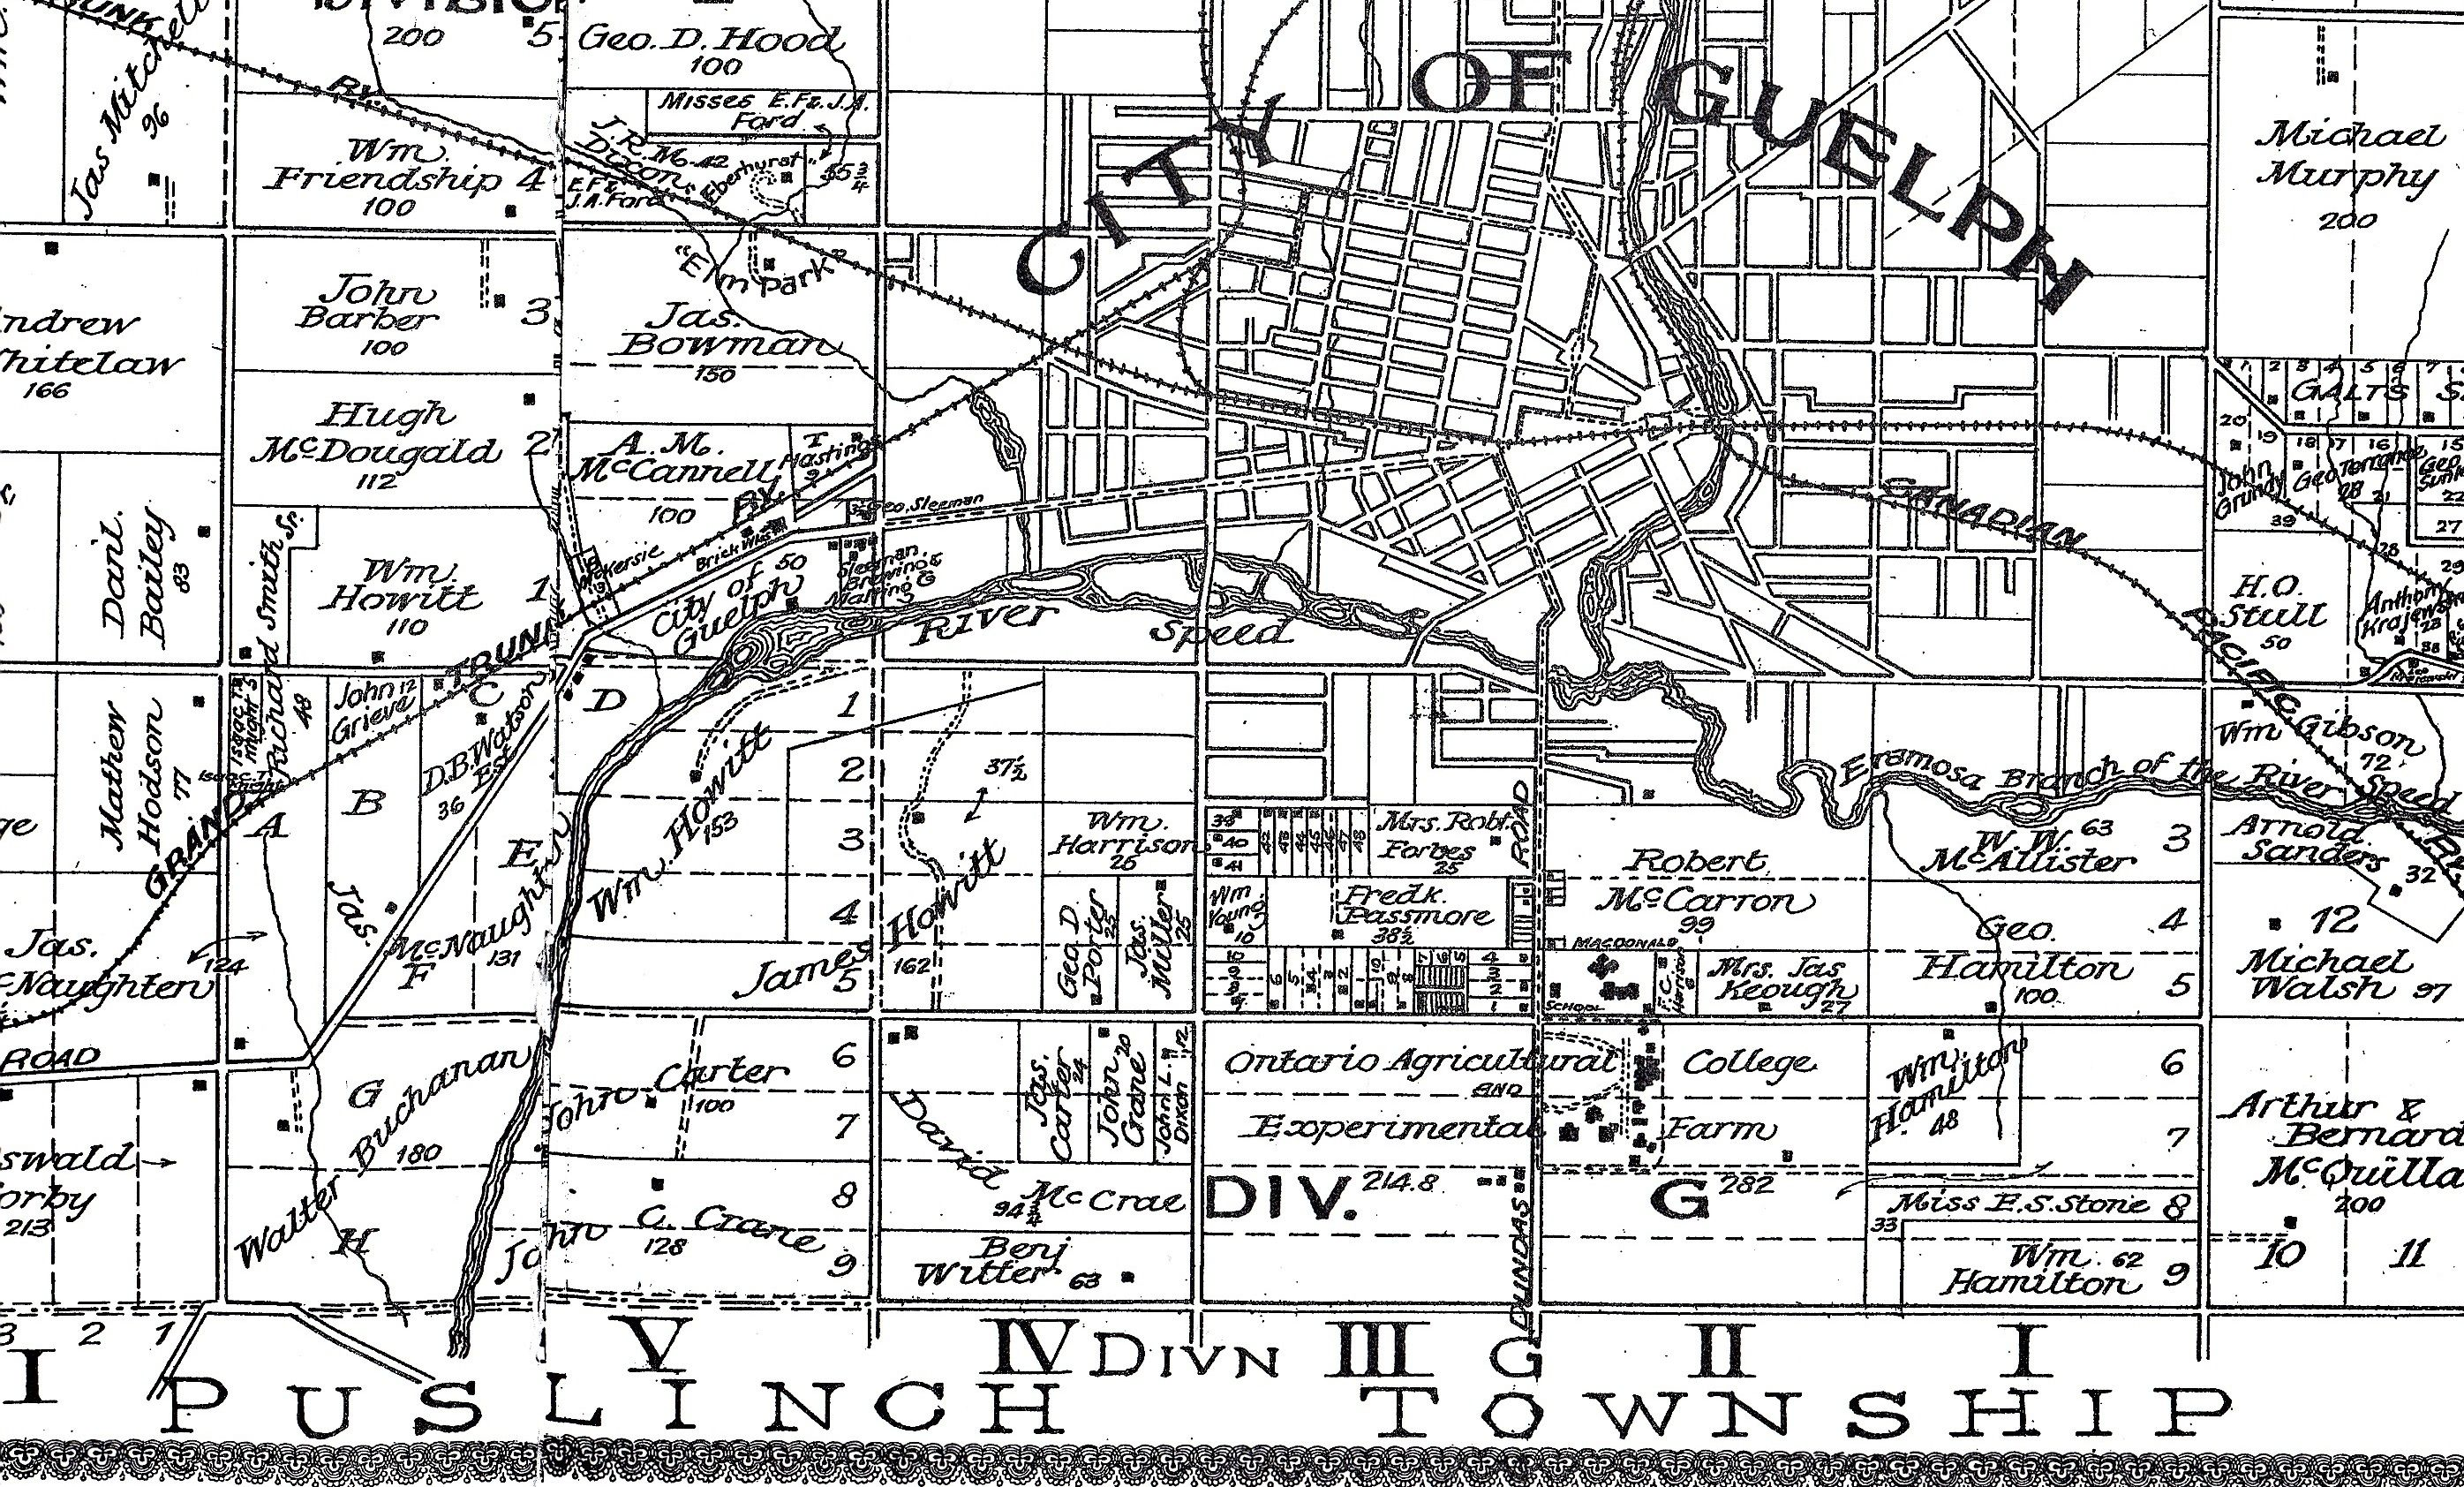 Guelph Canada Old Map Google Search Maps Pinterest - Guelph map